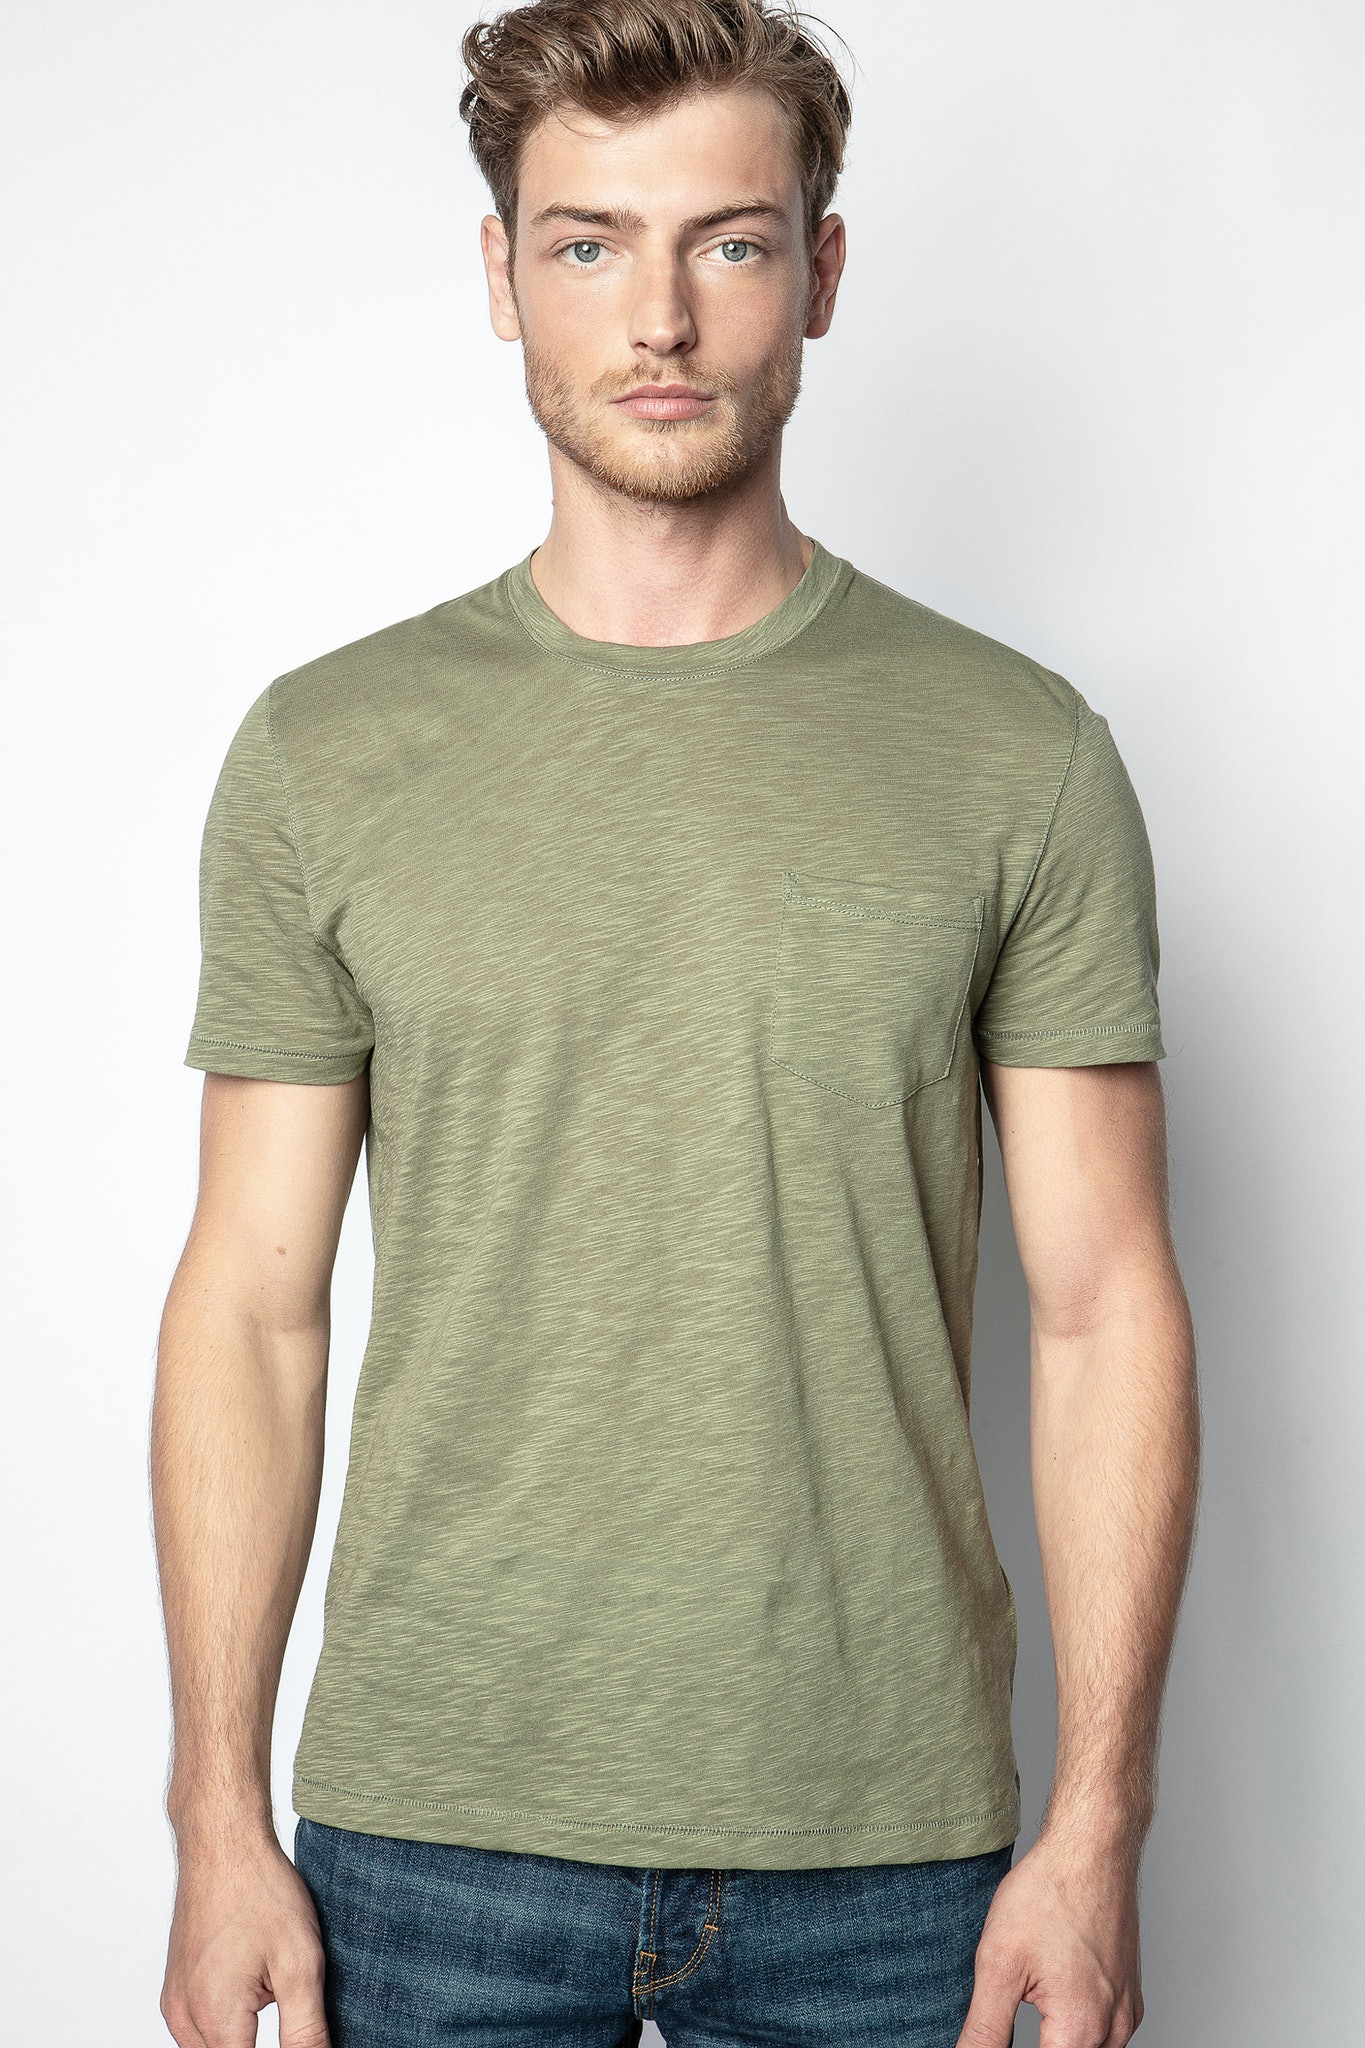 Stockholm Flamme Camou T-Shirt